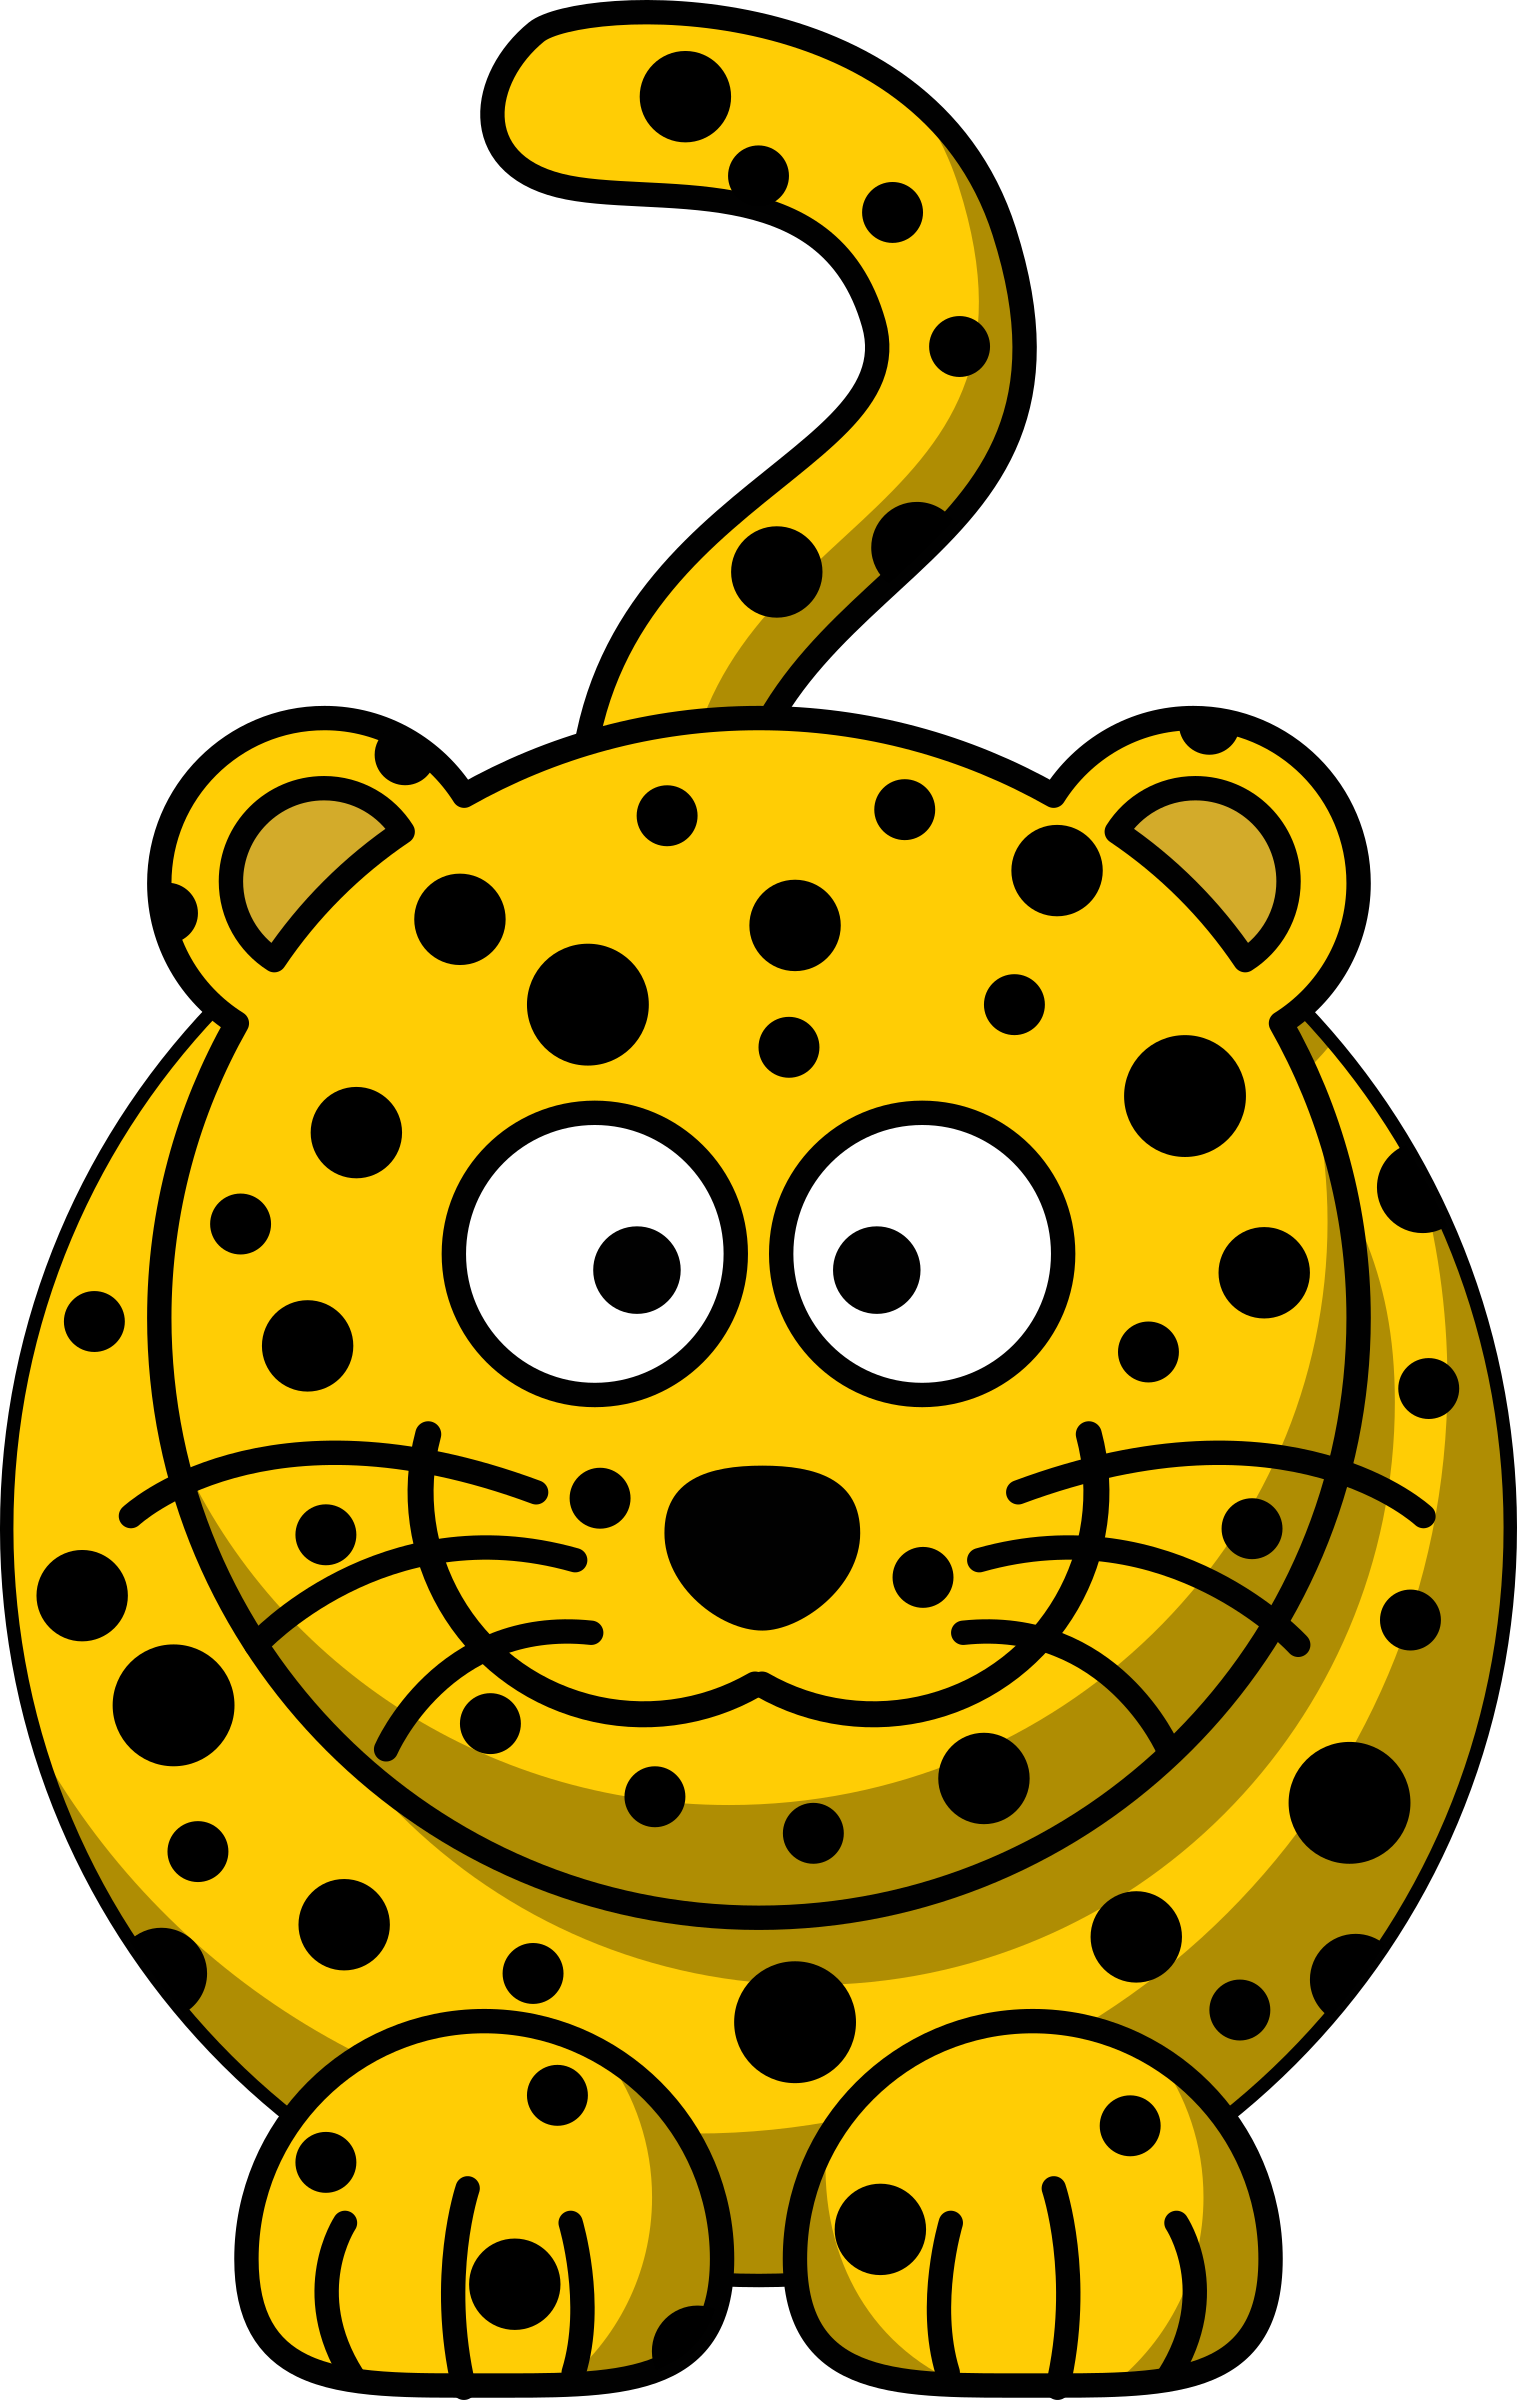 Leopard face clipart clipart library library Cartoon leopard by StudioFibonacci | Clip Art | Leopard face, Baby ... clipart library library